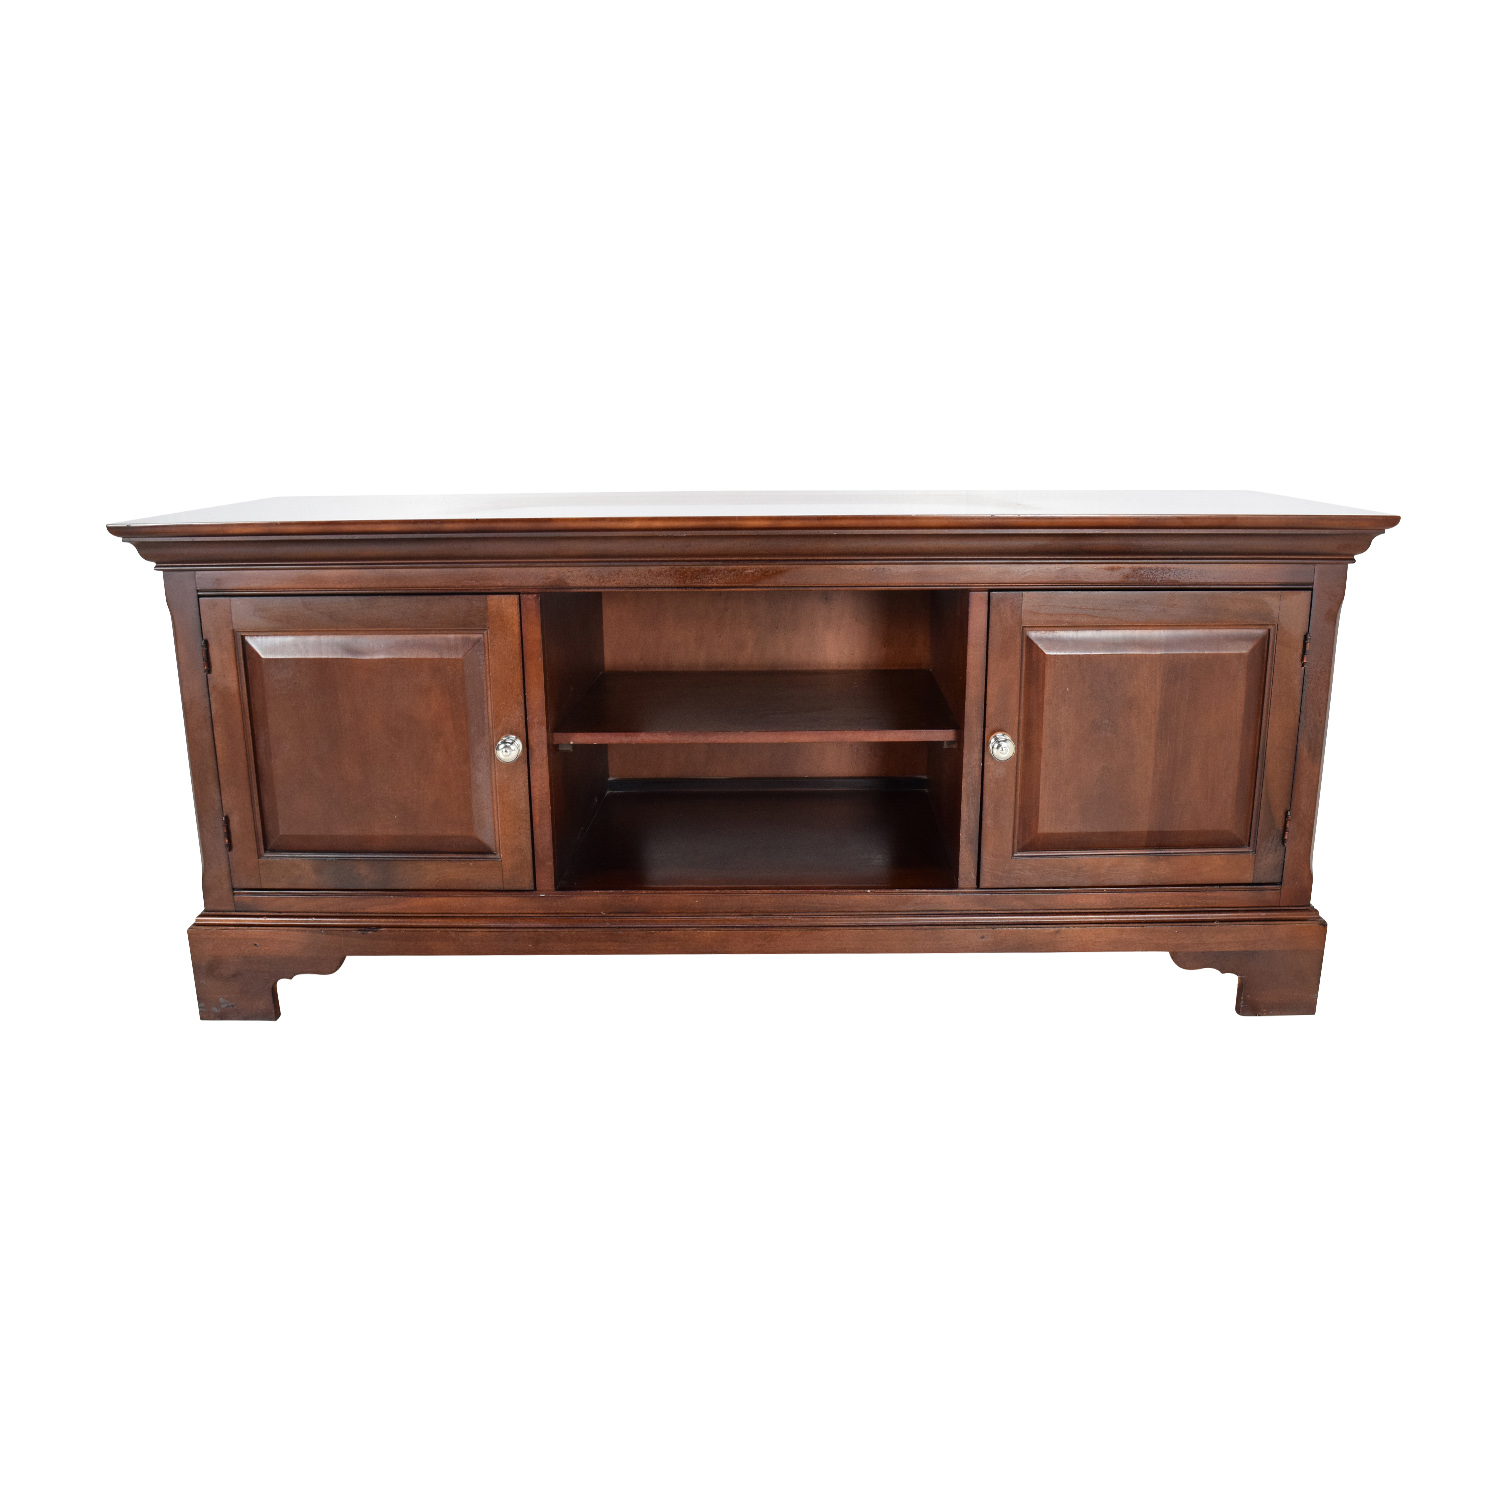 Macy's Macy's Credenza Sideboard for sale